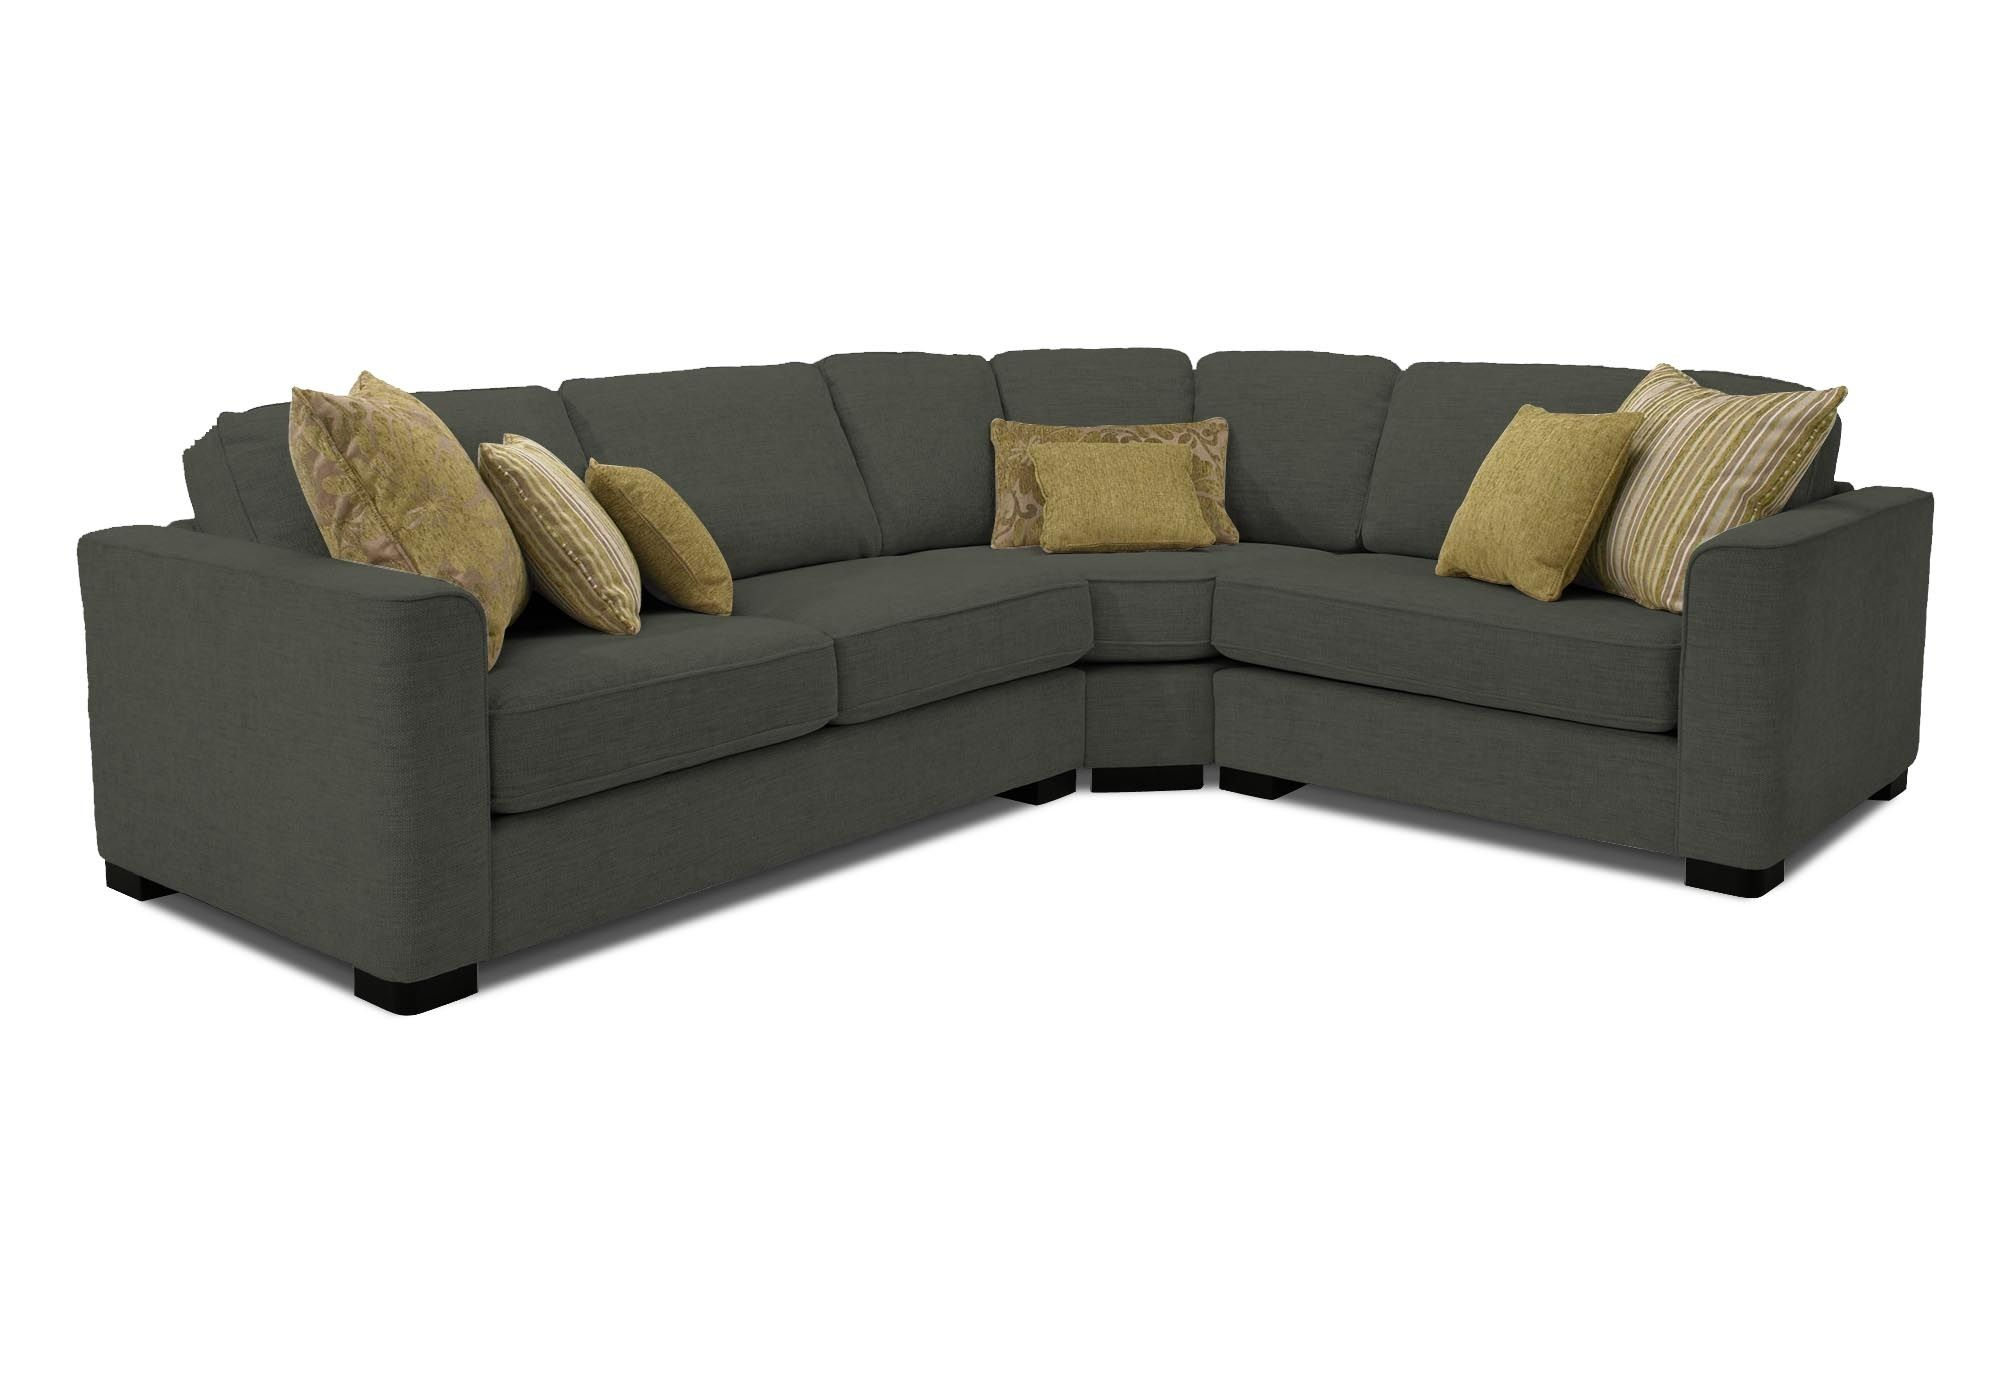 Furniture Village Leather Corner Sofa Bed Living Room With Red Decor Combi 2 Rhf Eleanor Sets Sofas